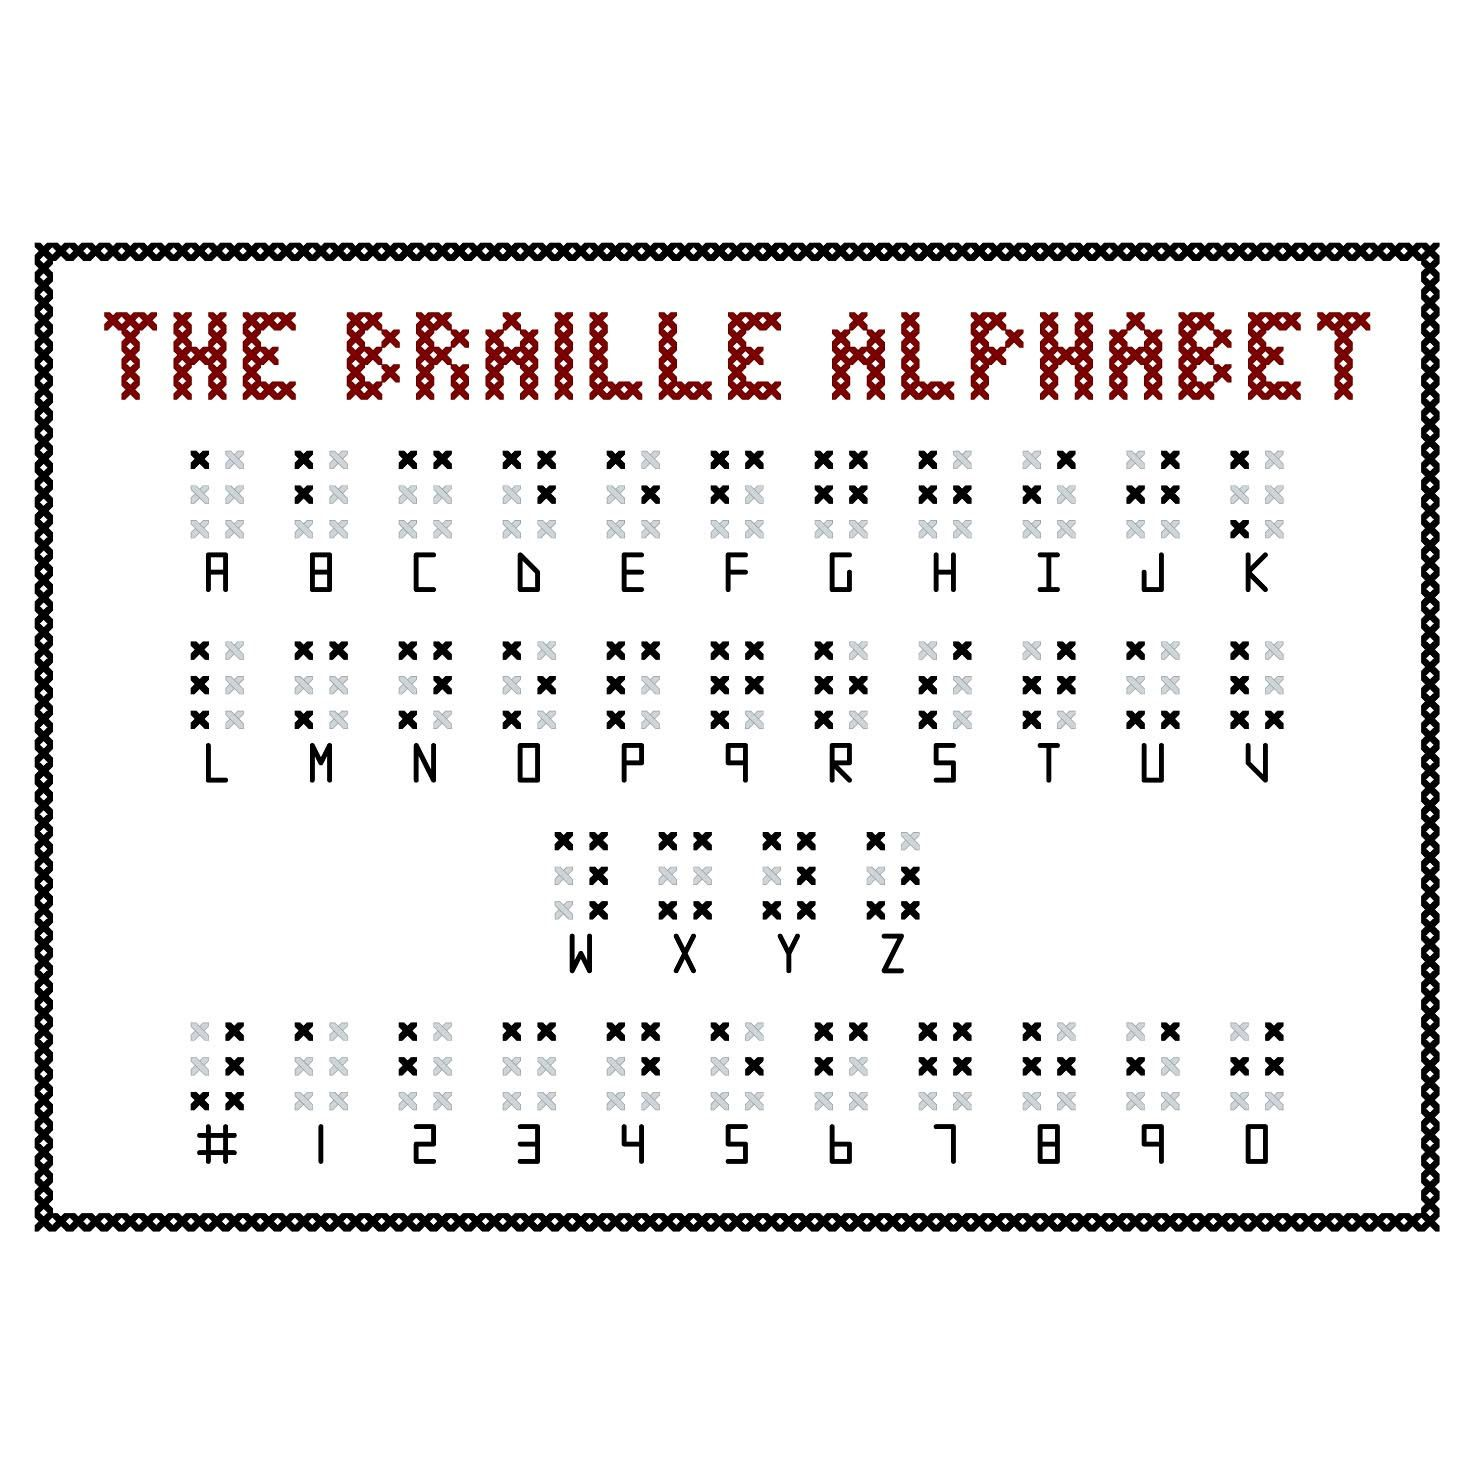 Braille Alphabet Cross Stitch Sampler Pattern